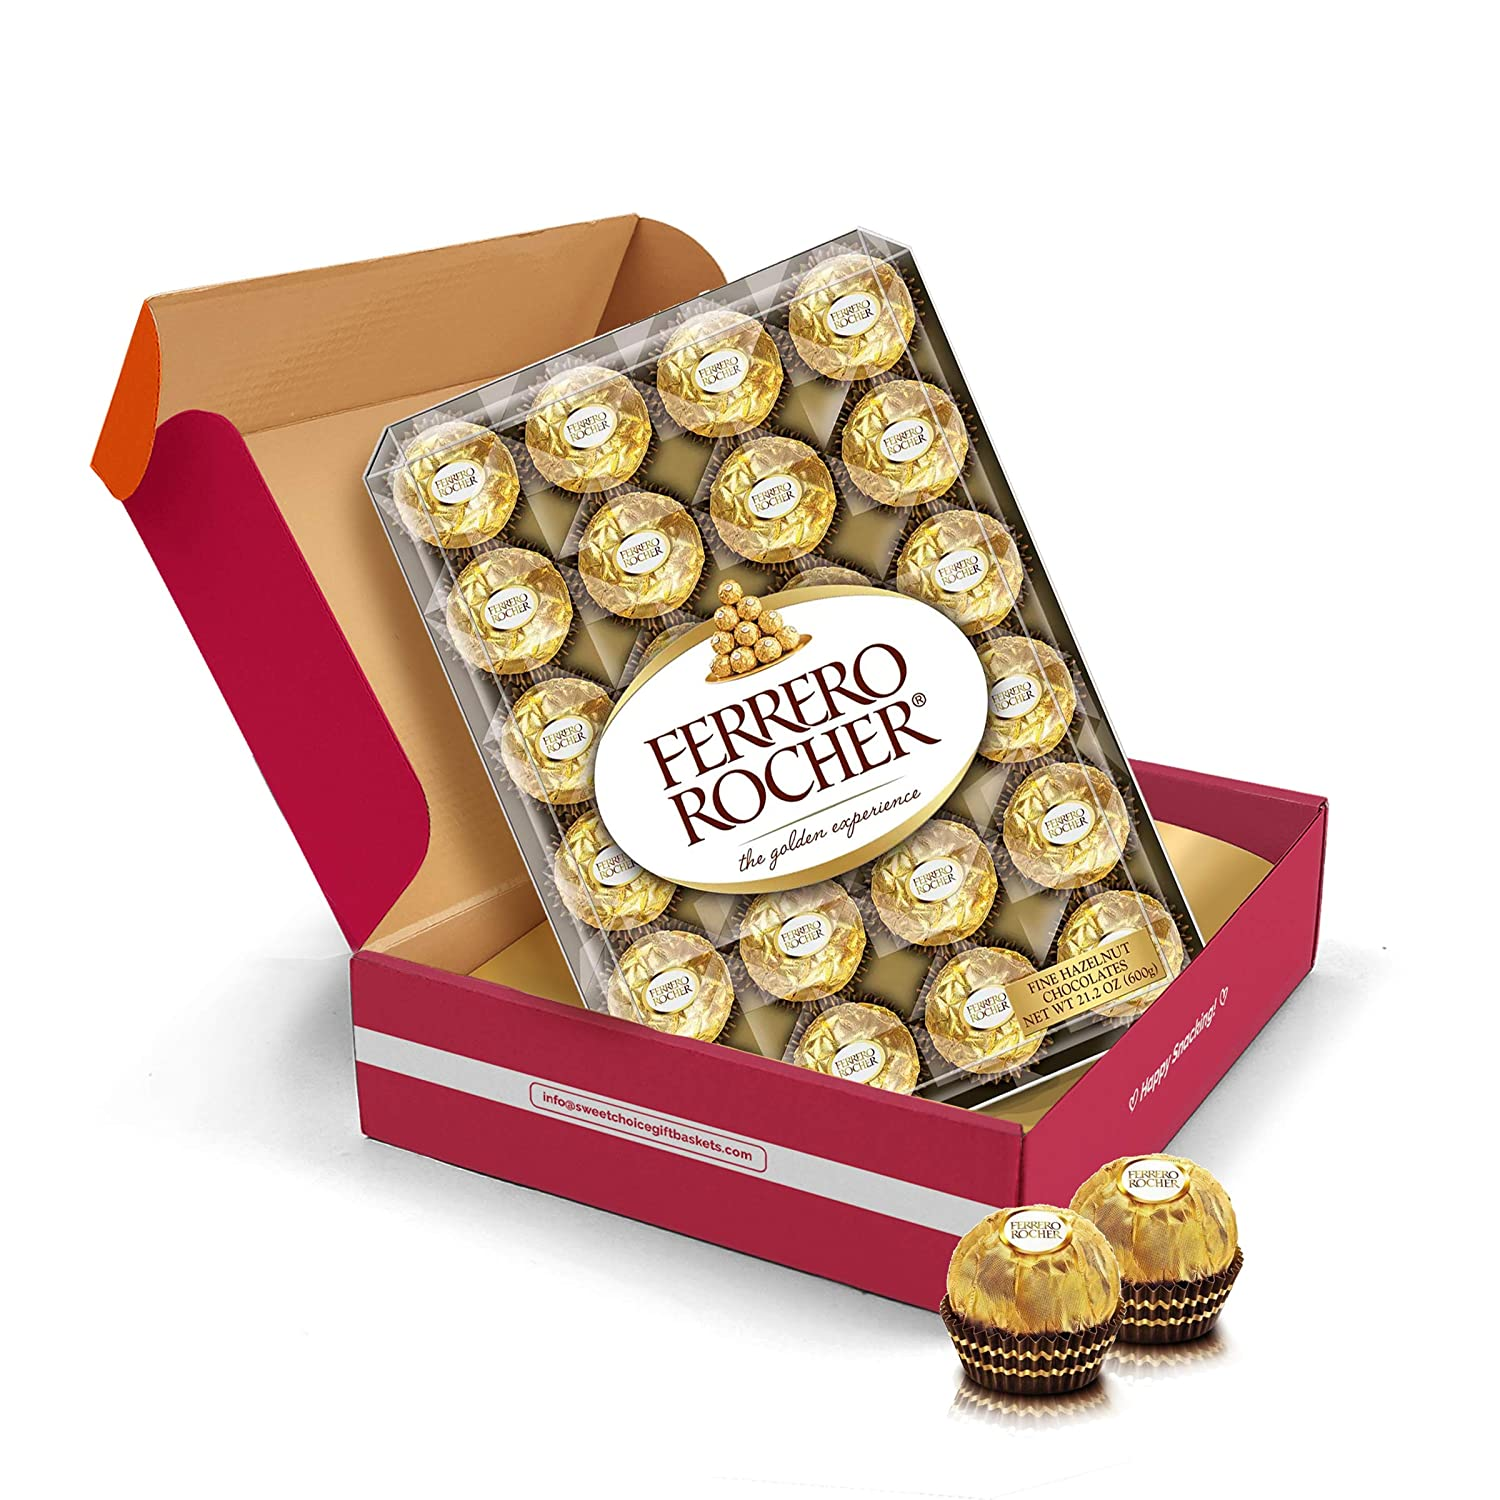 Ferrero Rocher Hazelnut Chocolates Holiday Chocolate Box Variety Pack, (45 pack) Christmas Chocolate Gift Basket - College Student Care Package, Thanksgiving, Xmas